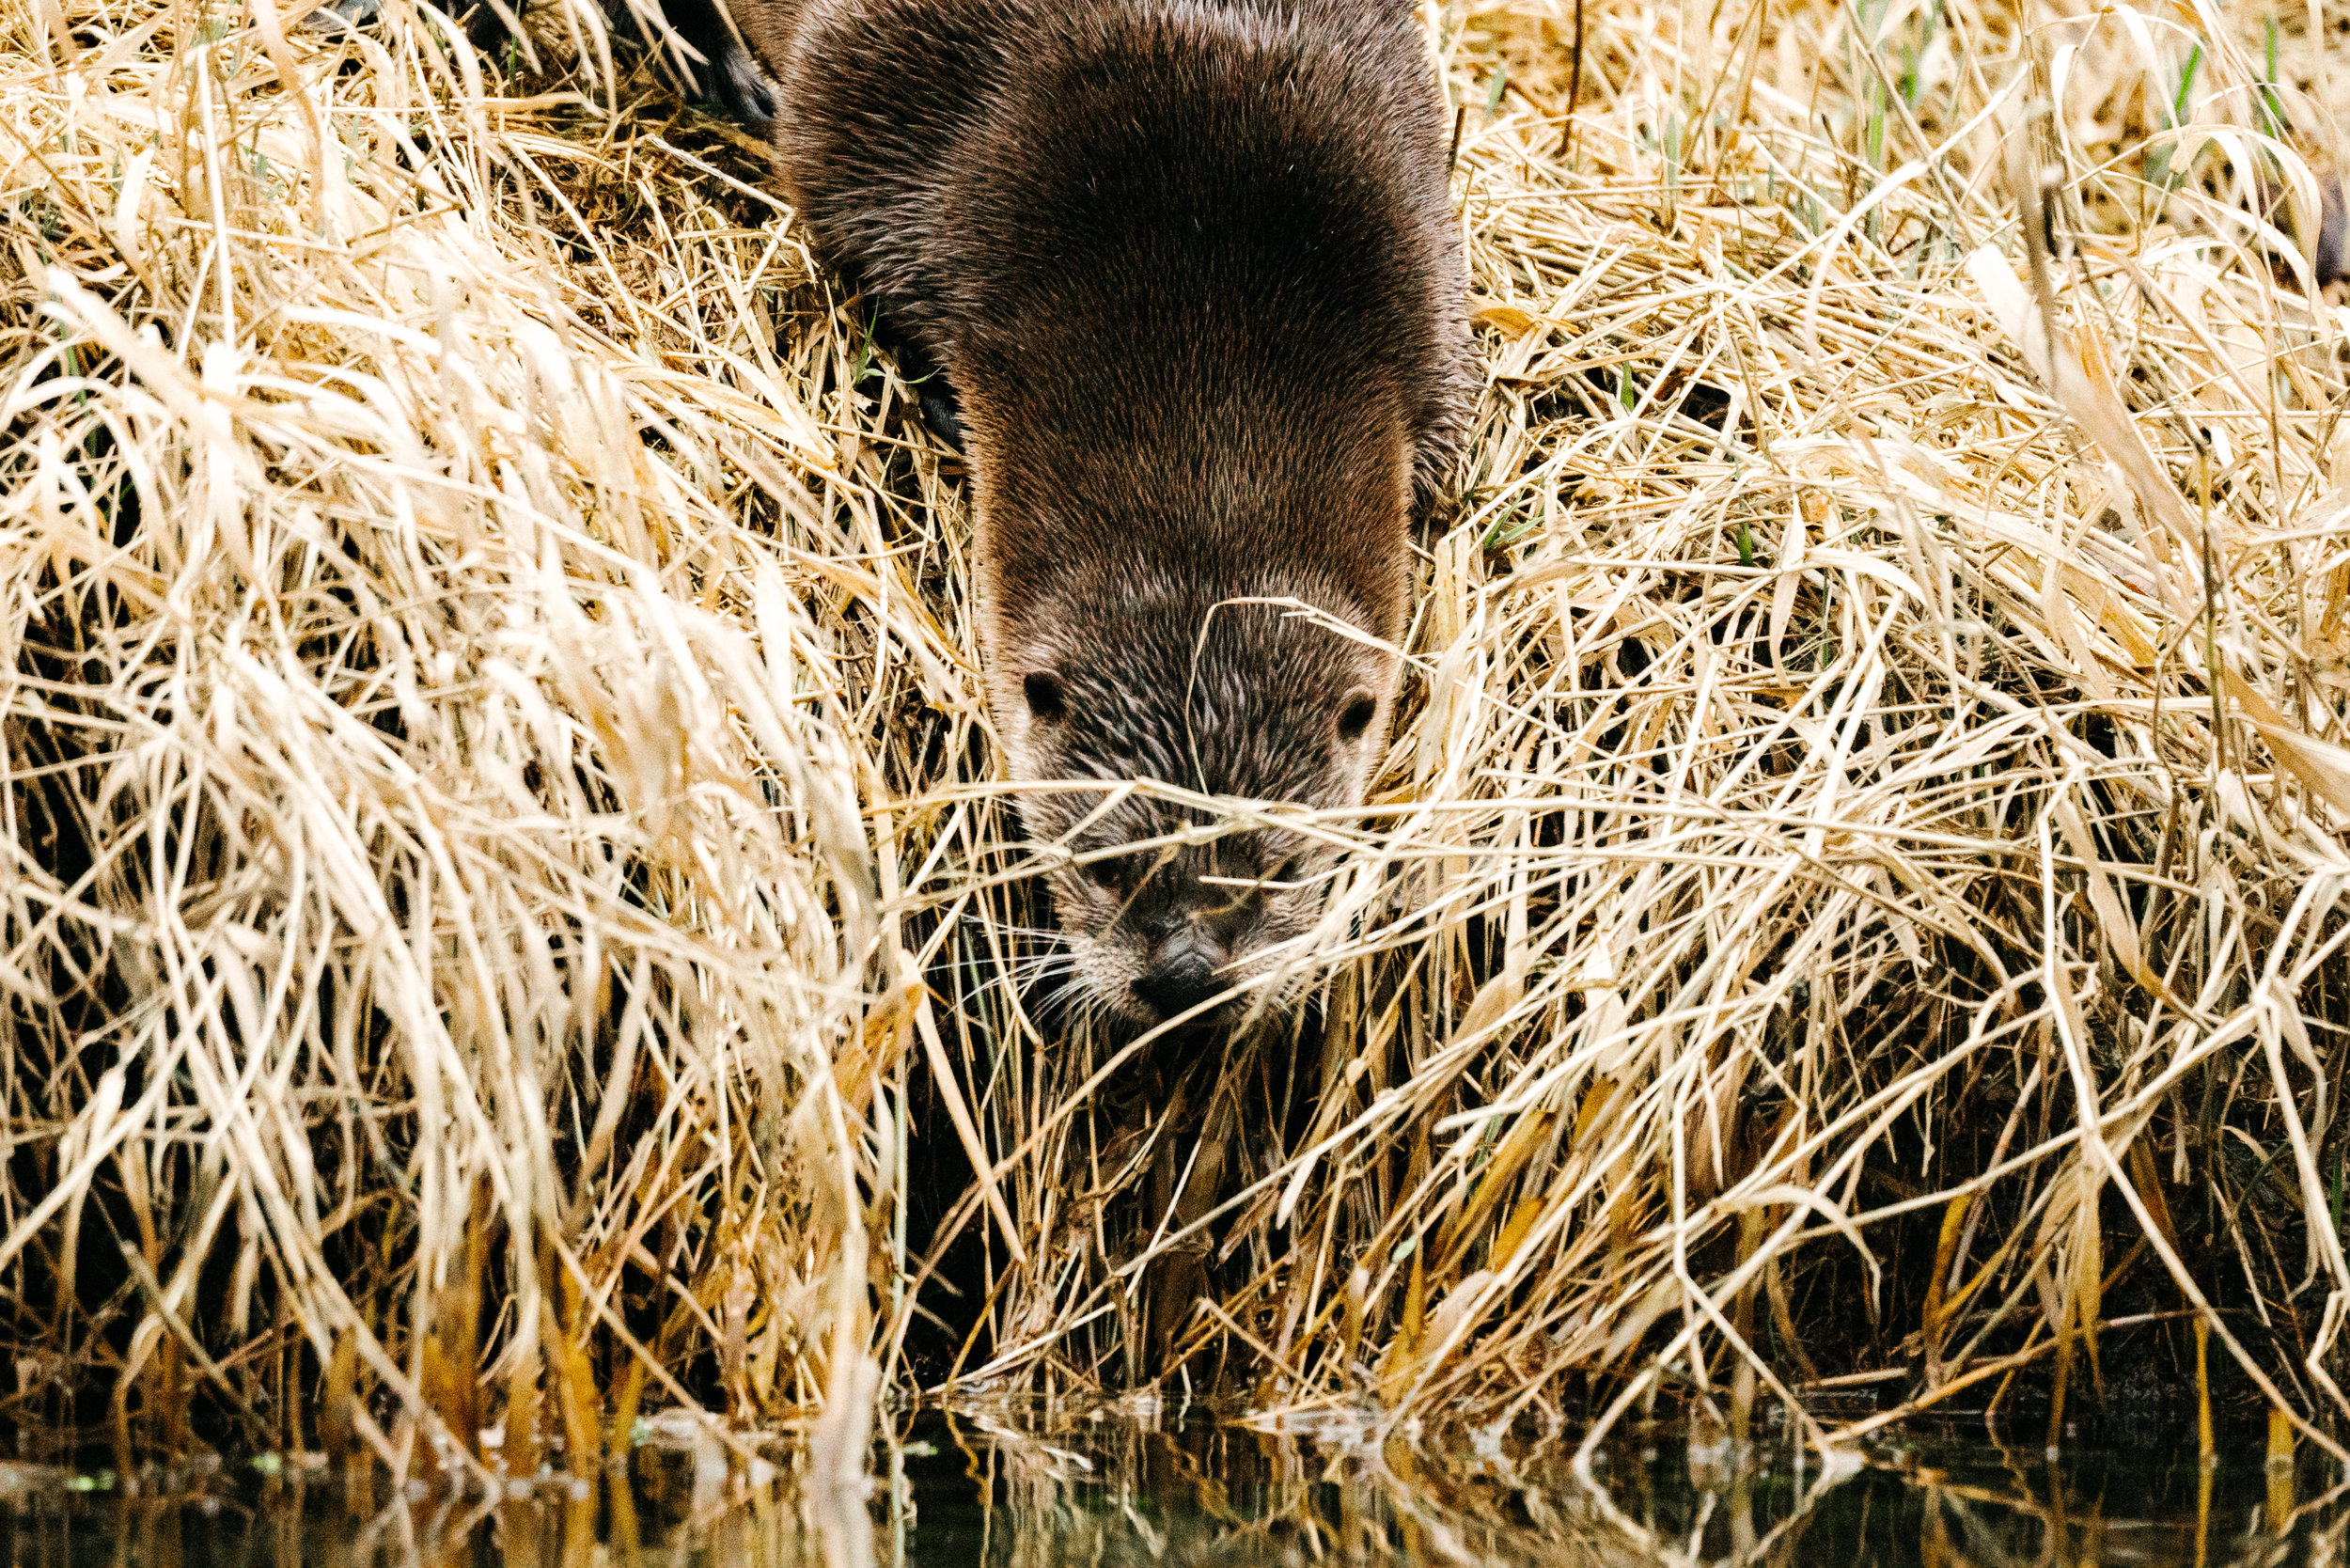 Otters in the Sammamish River by Seattle Photographer, Sara Montour Lewis